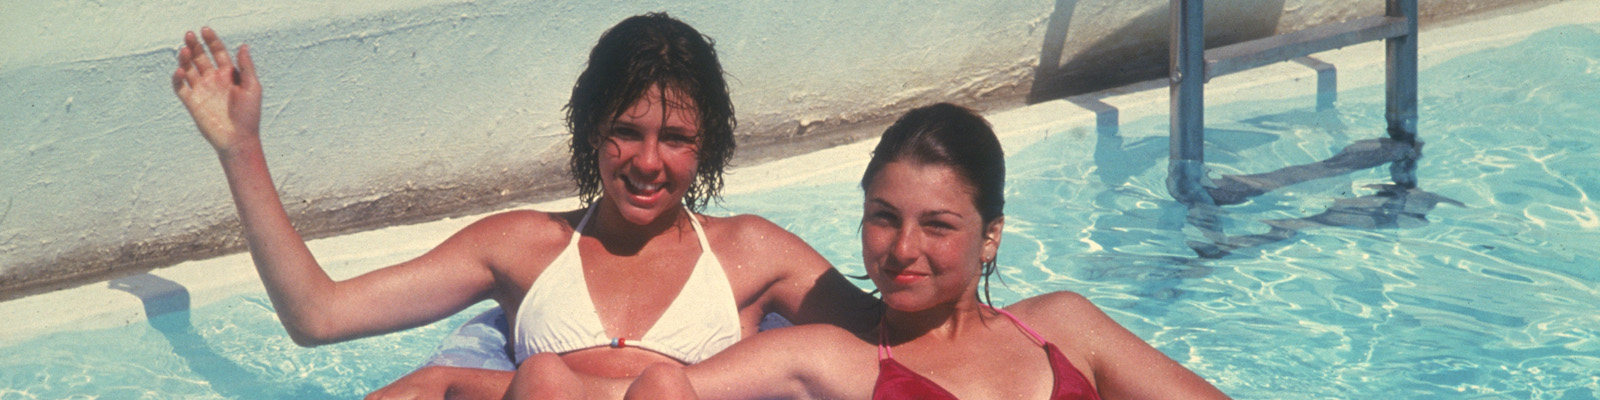 Kristy McNichol and Tatum O'Neal lounge in a pool in Little Darlings